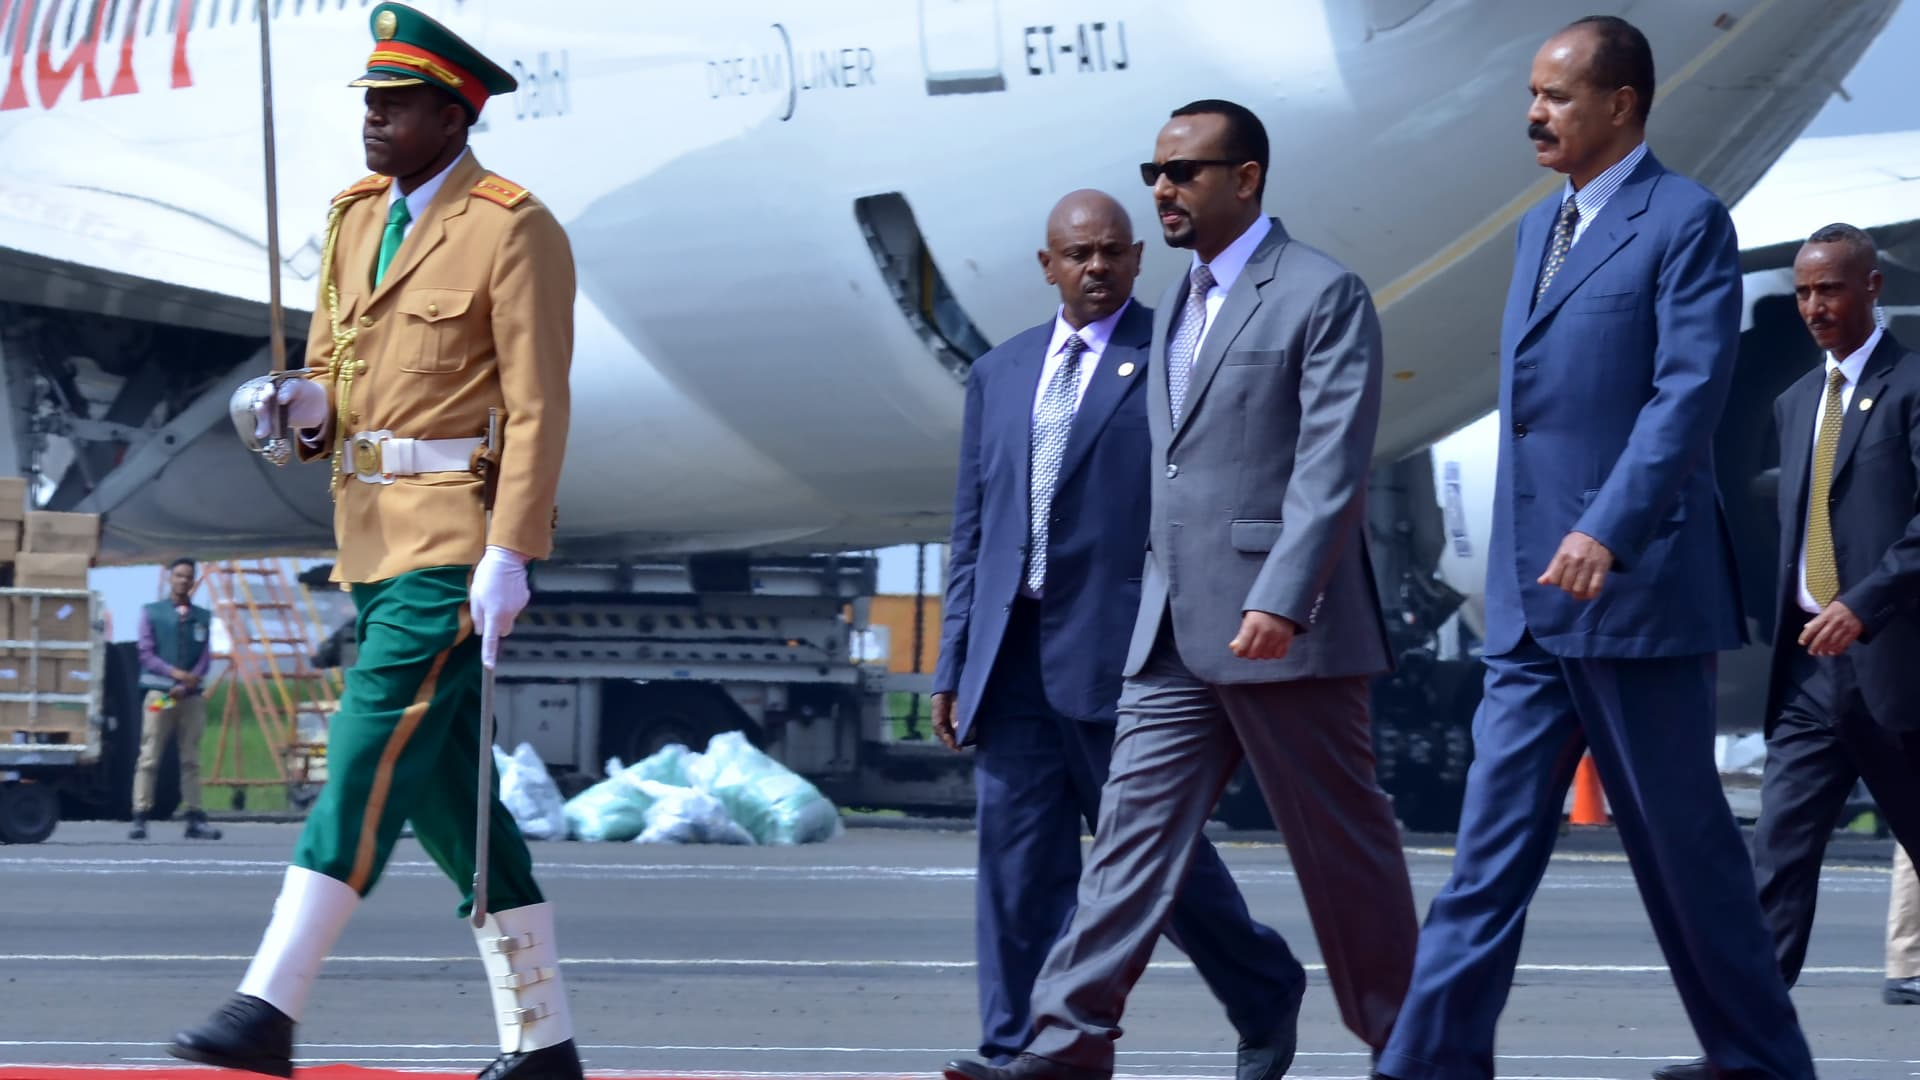 Eritrea's President Isaias Afwerki (second right) is received by Ethiopia's Prime Minister Abiy Ahmed (third right) as he arrives at Bole International airport in Addis Ababa on July 14, 2018.